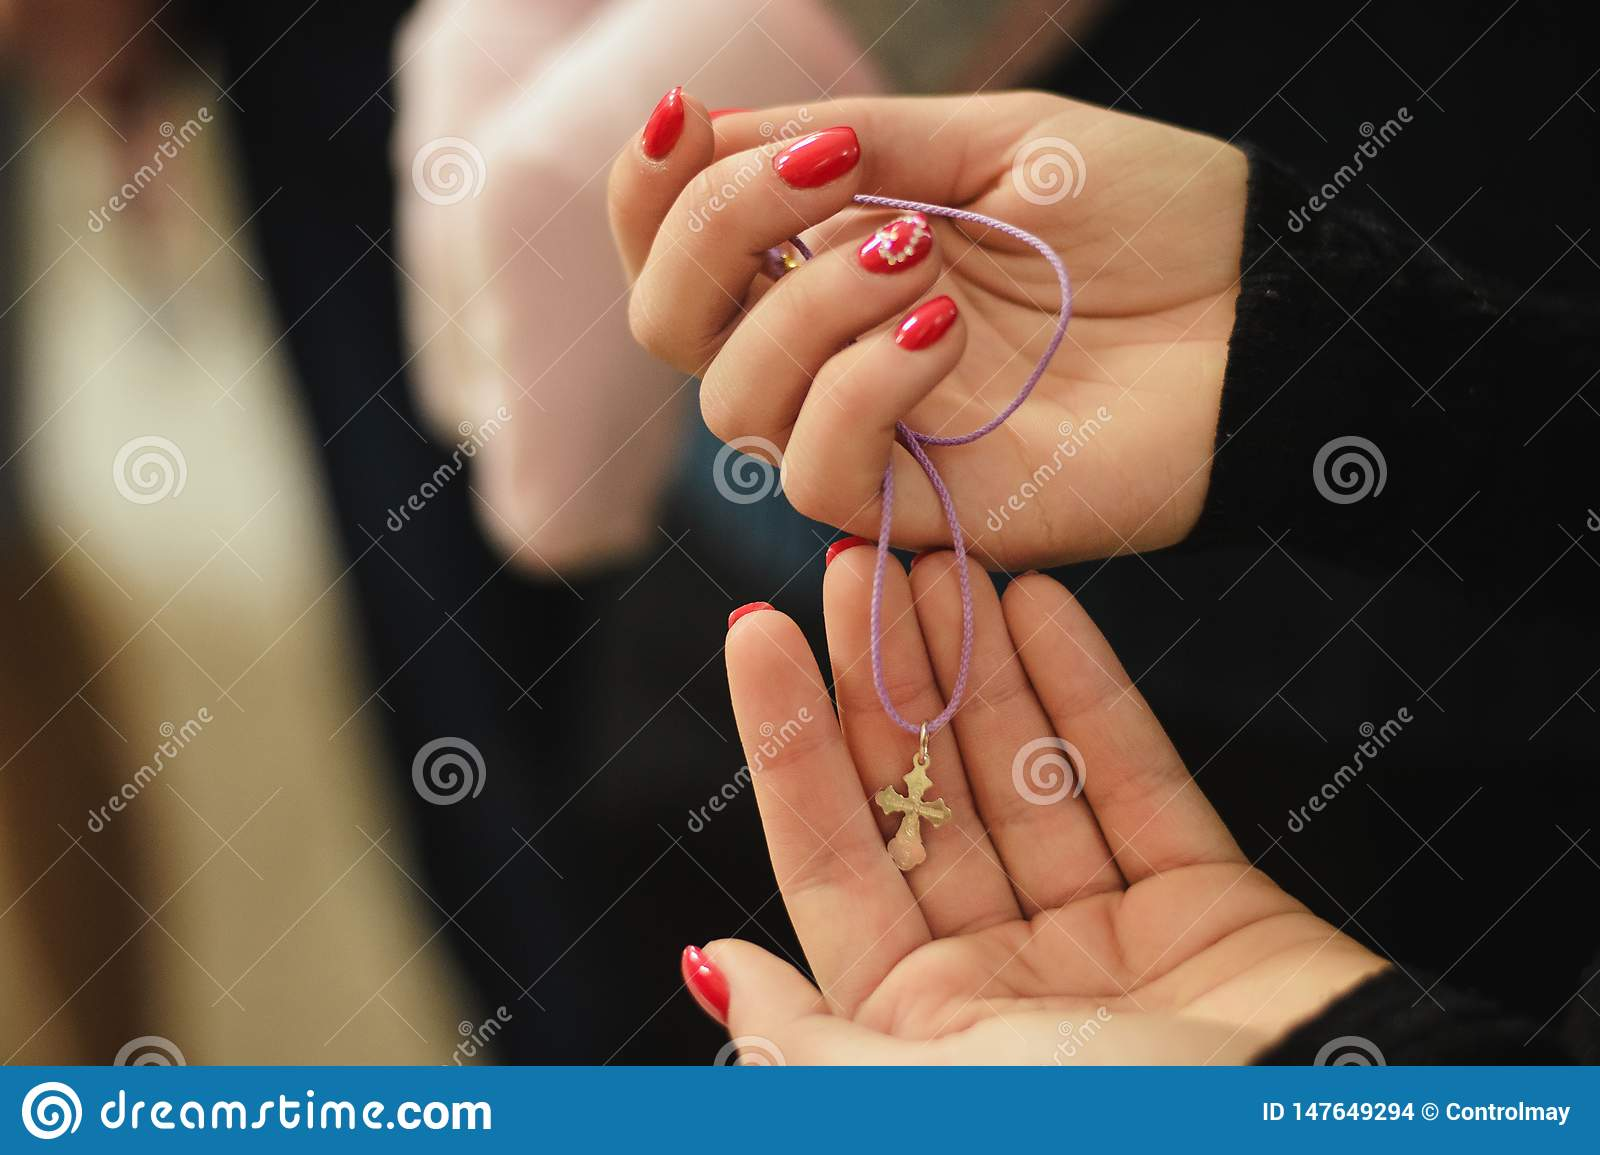 Sign of religion in the hands of a girl.